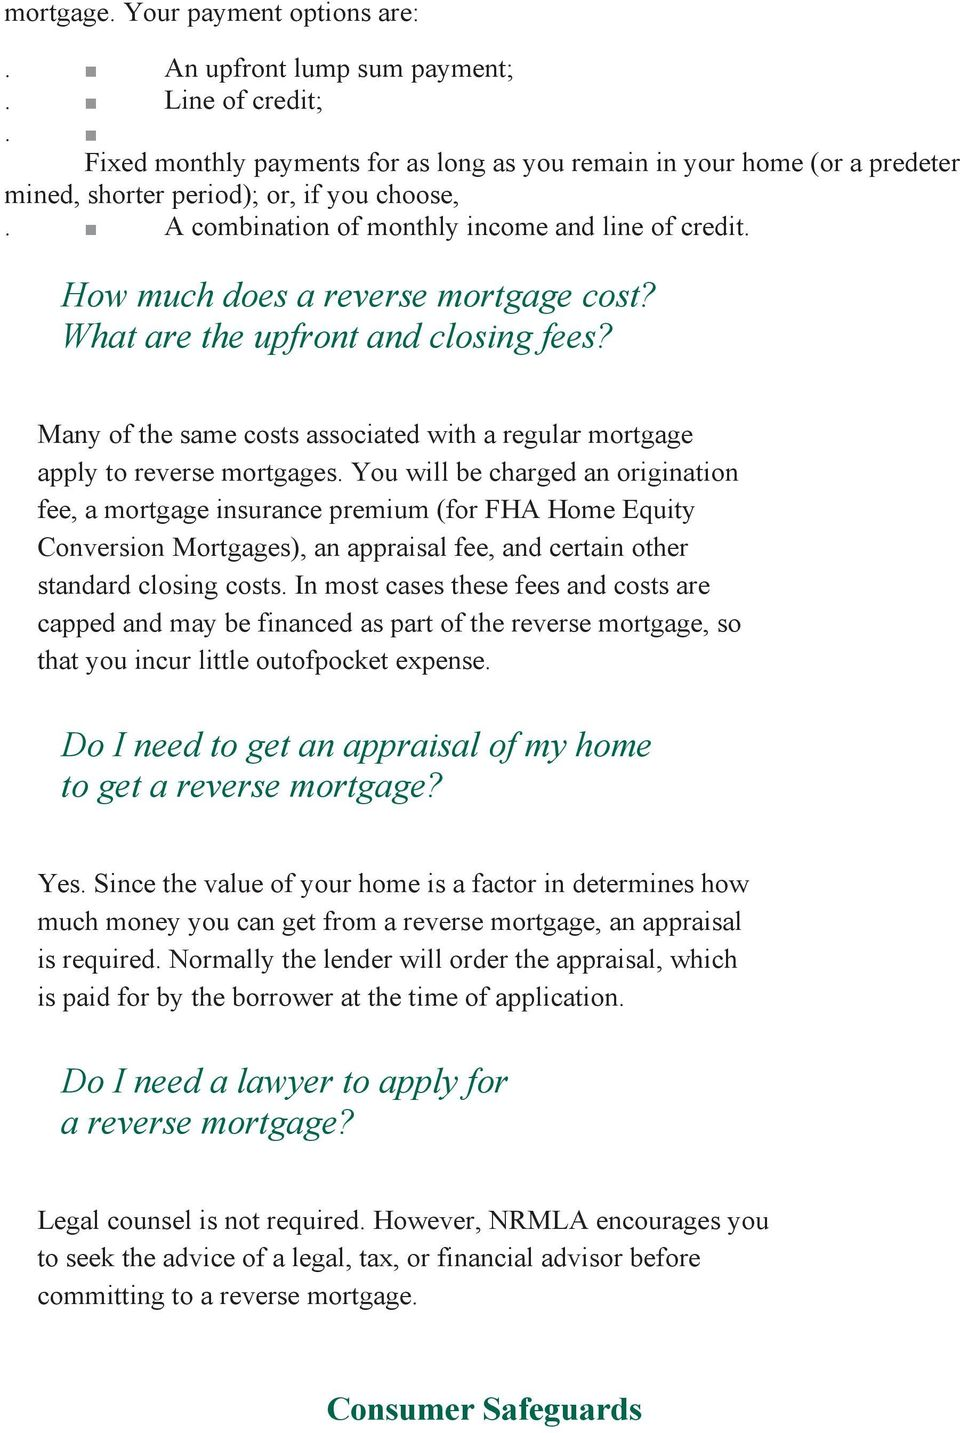 How much does a reverse mortgage cost? What are the upfront and closing fees? Many of the same costs associated with a regular mortgage apply to reverse mortgages.